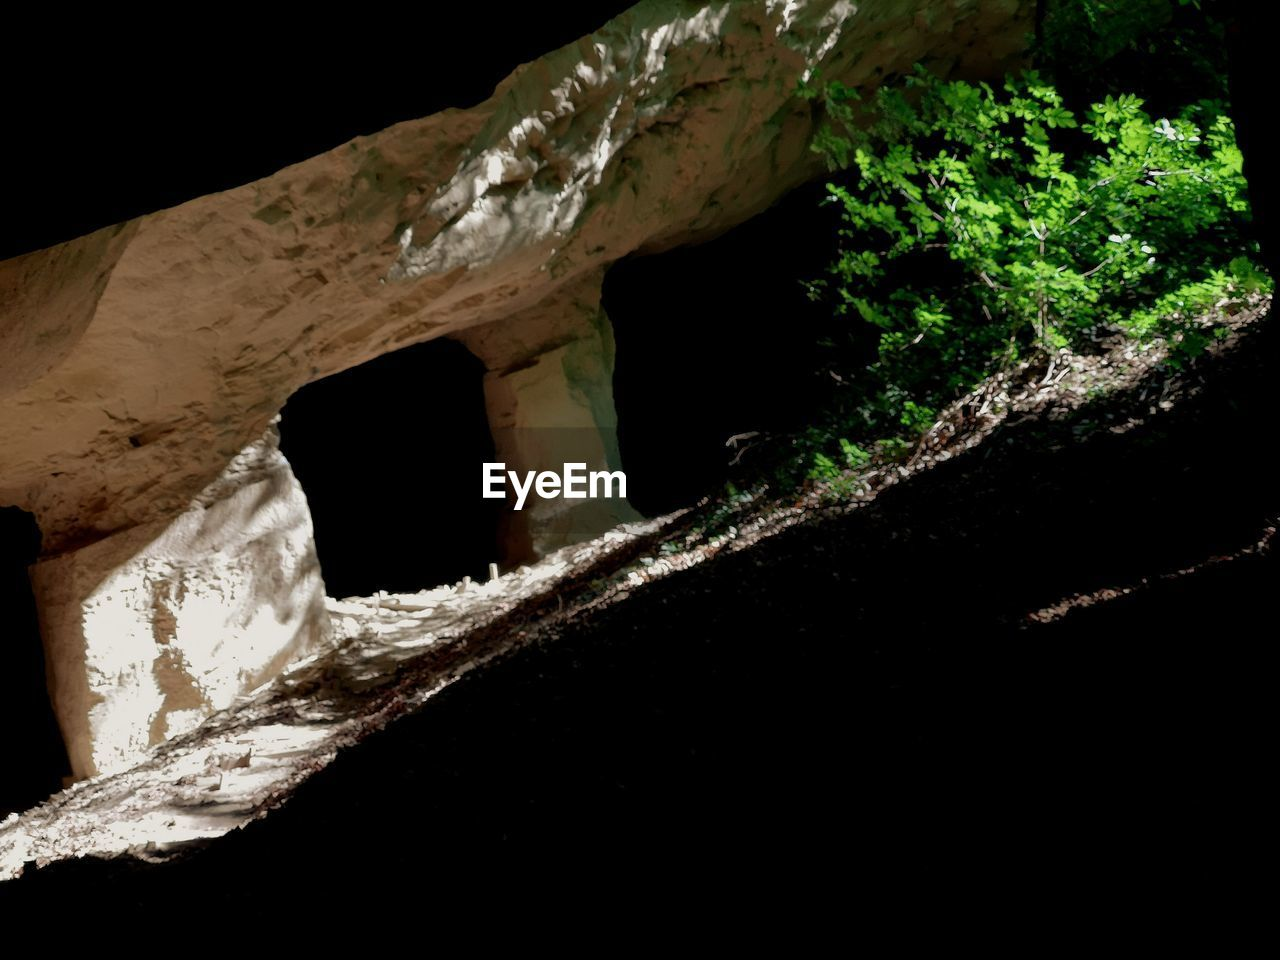 close-up, no people, nature, plant, tree, outdoors, black background, night, wood - material, focus on foreground, selective focus, hole, plant part, growth, leaf, dark, window, cave